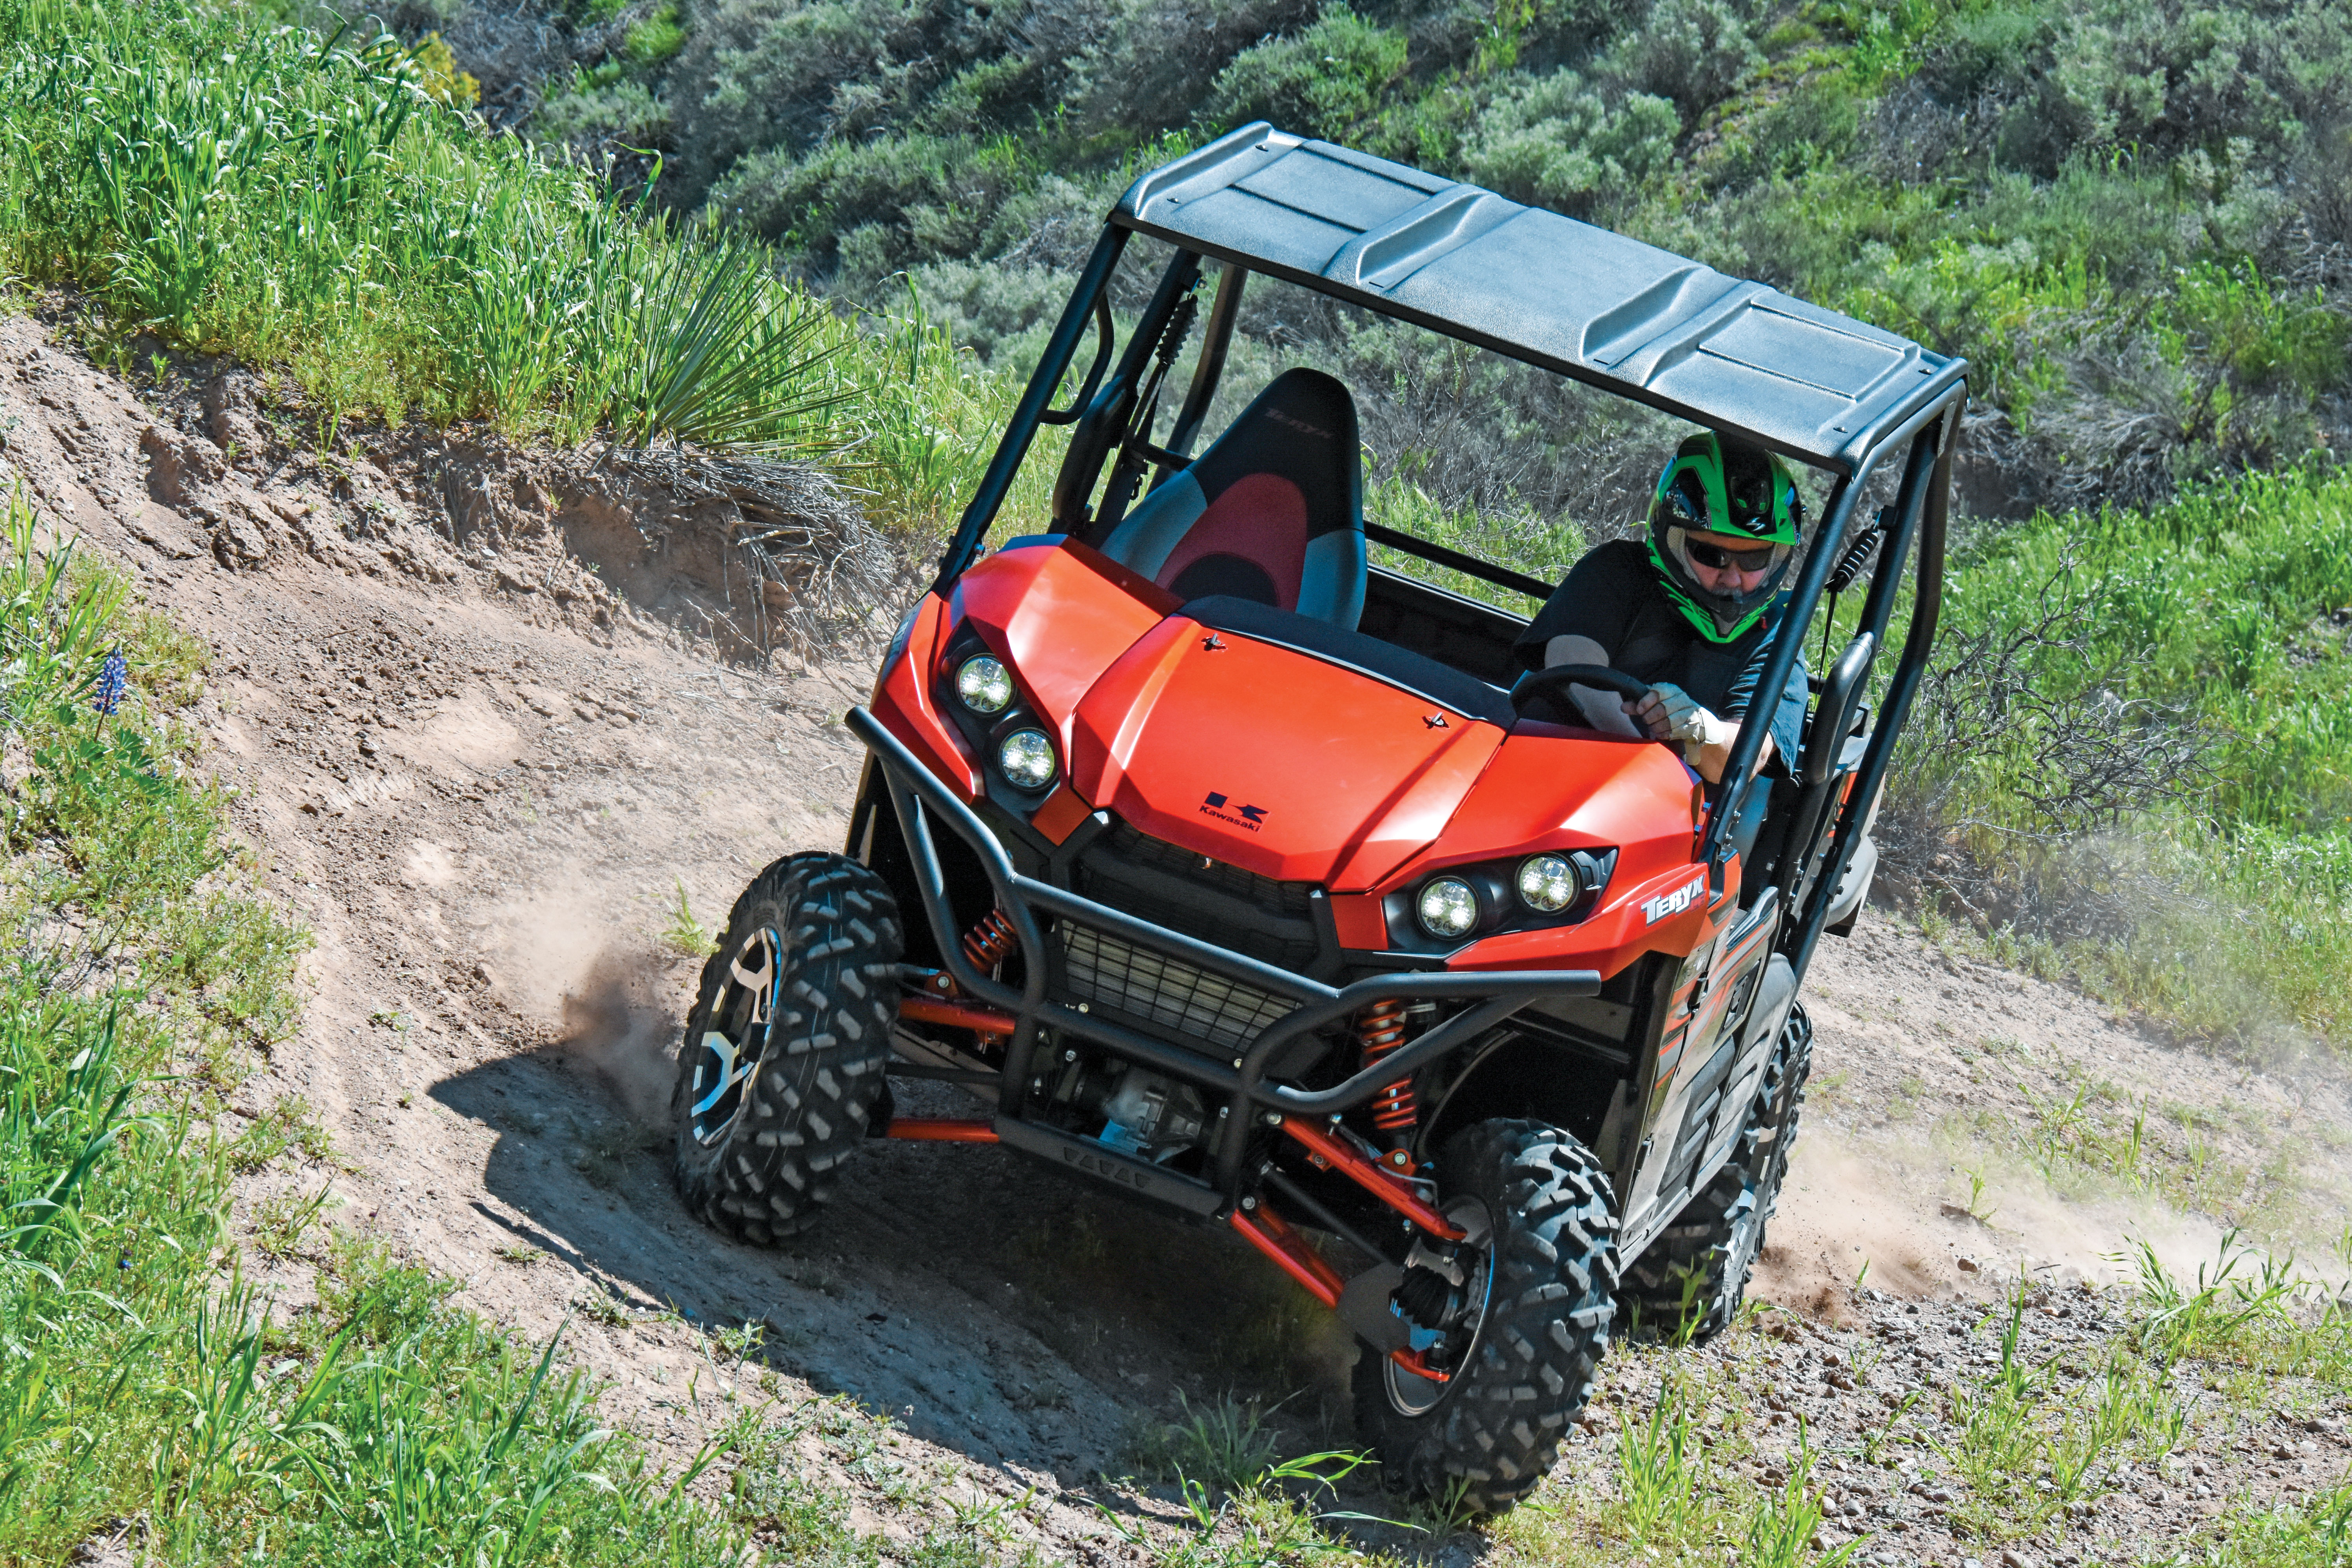 The Teryx corners well with its squatty suspension wide width anti-sway bar and EPS assist and it\u0027s a blast to drift into turns in 2WD. Lined half doors ... & TEST: KAWASAKI TERYX 800 FI LE | UTV Action Magazine